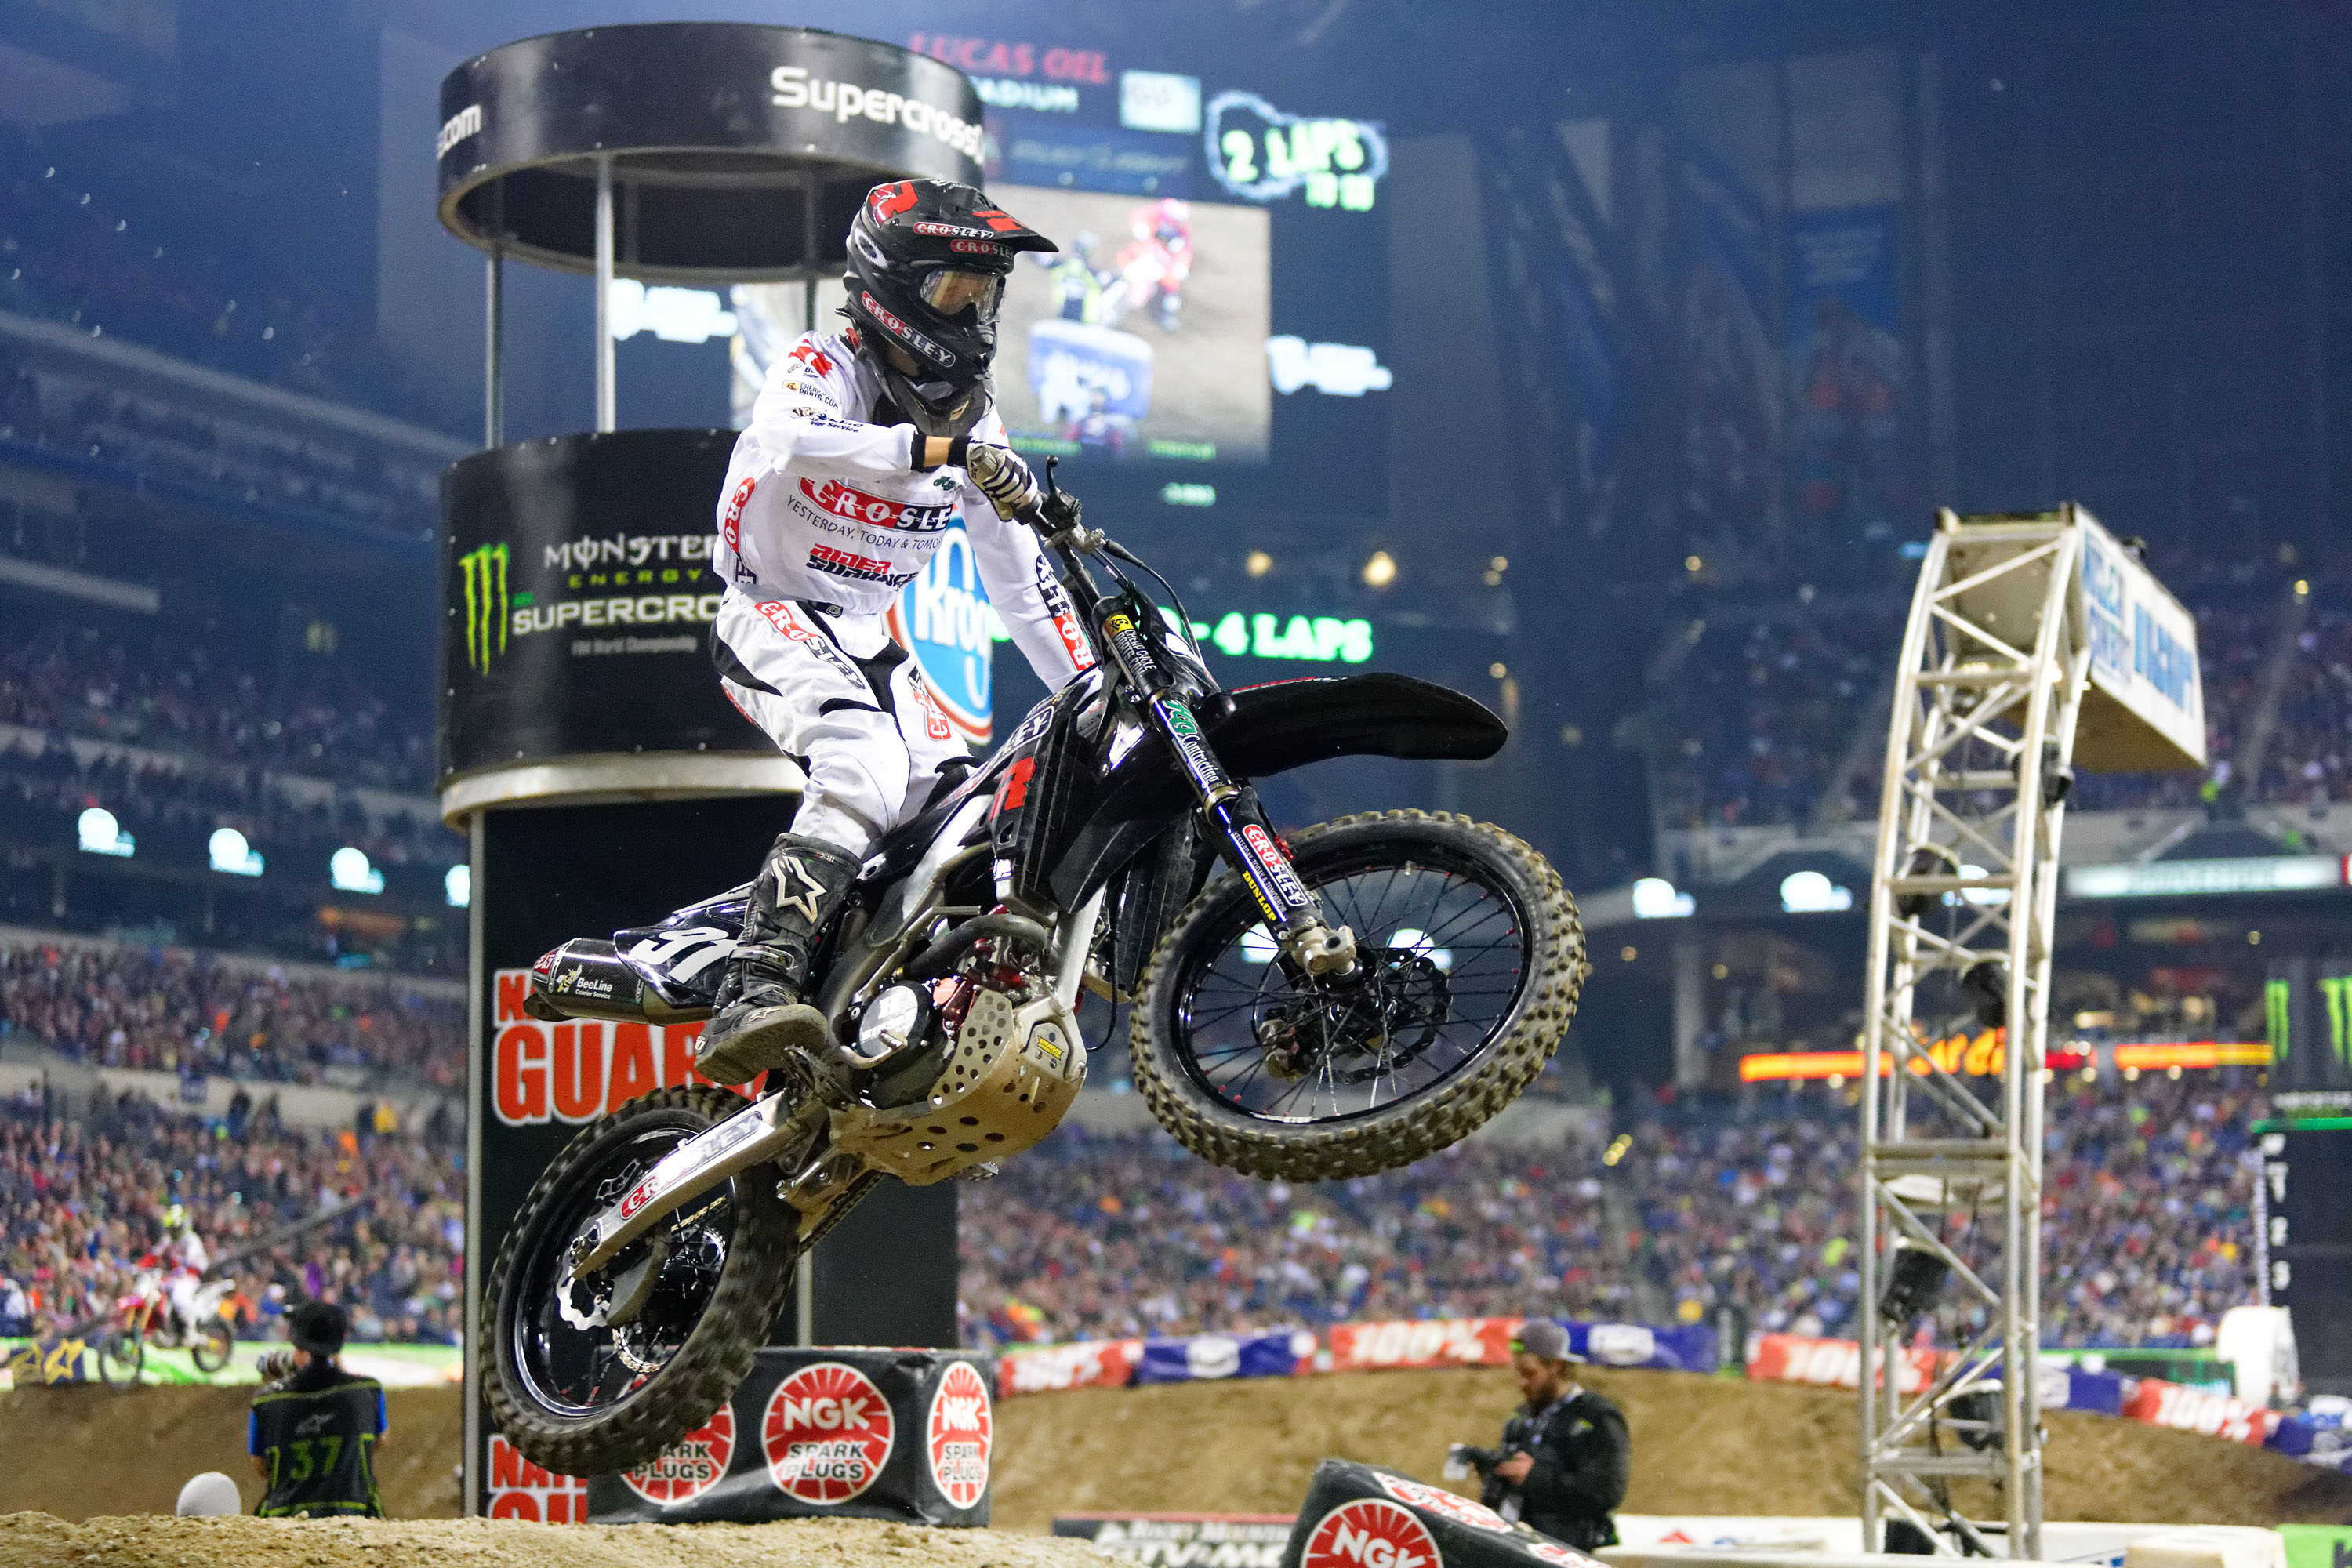 Baumert is adjusting to Monster Energy Supercross, and made his first career main last Saturday.